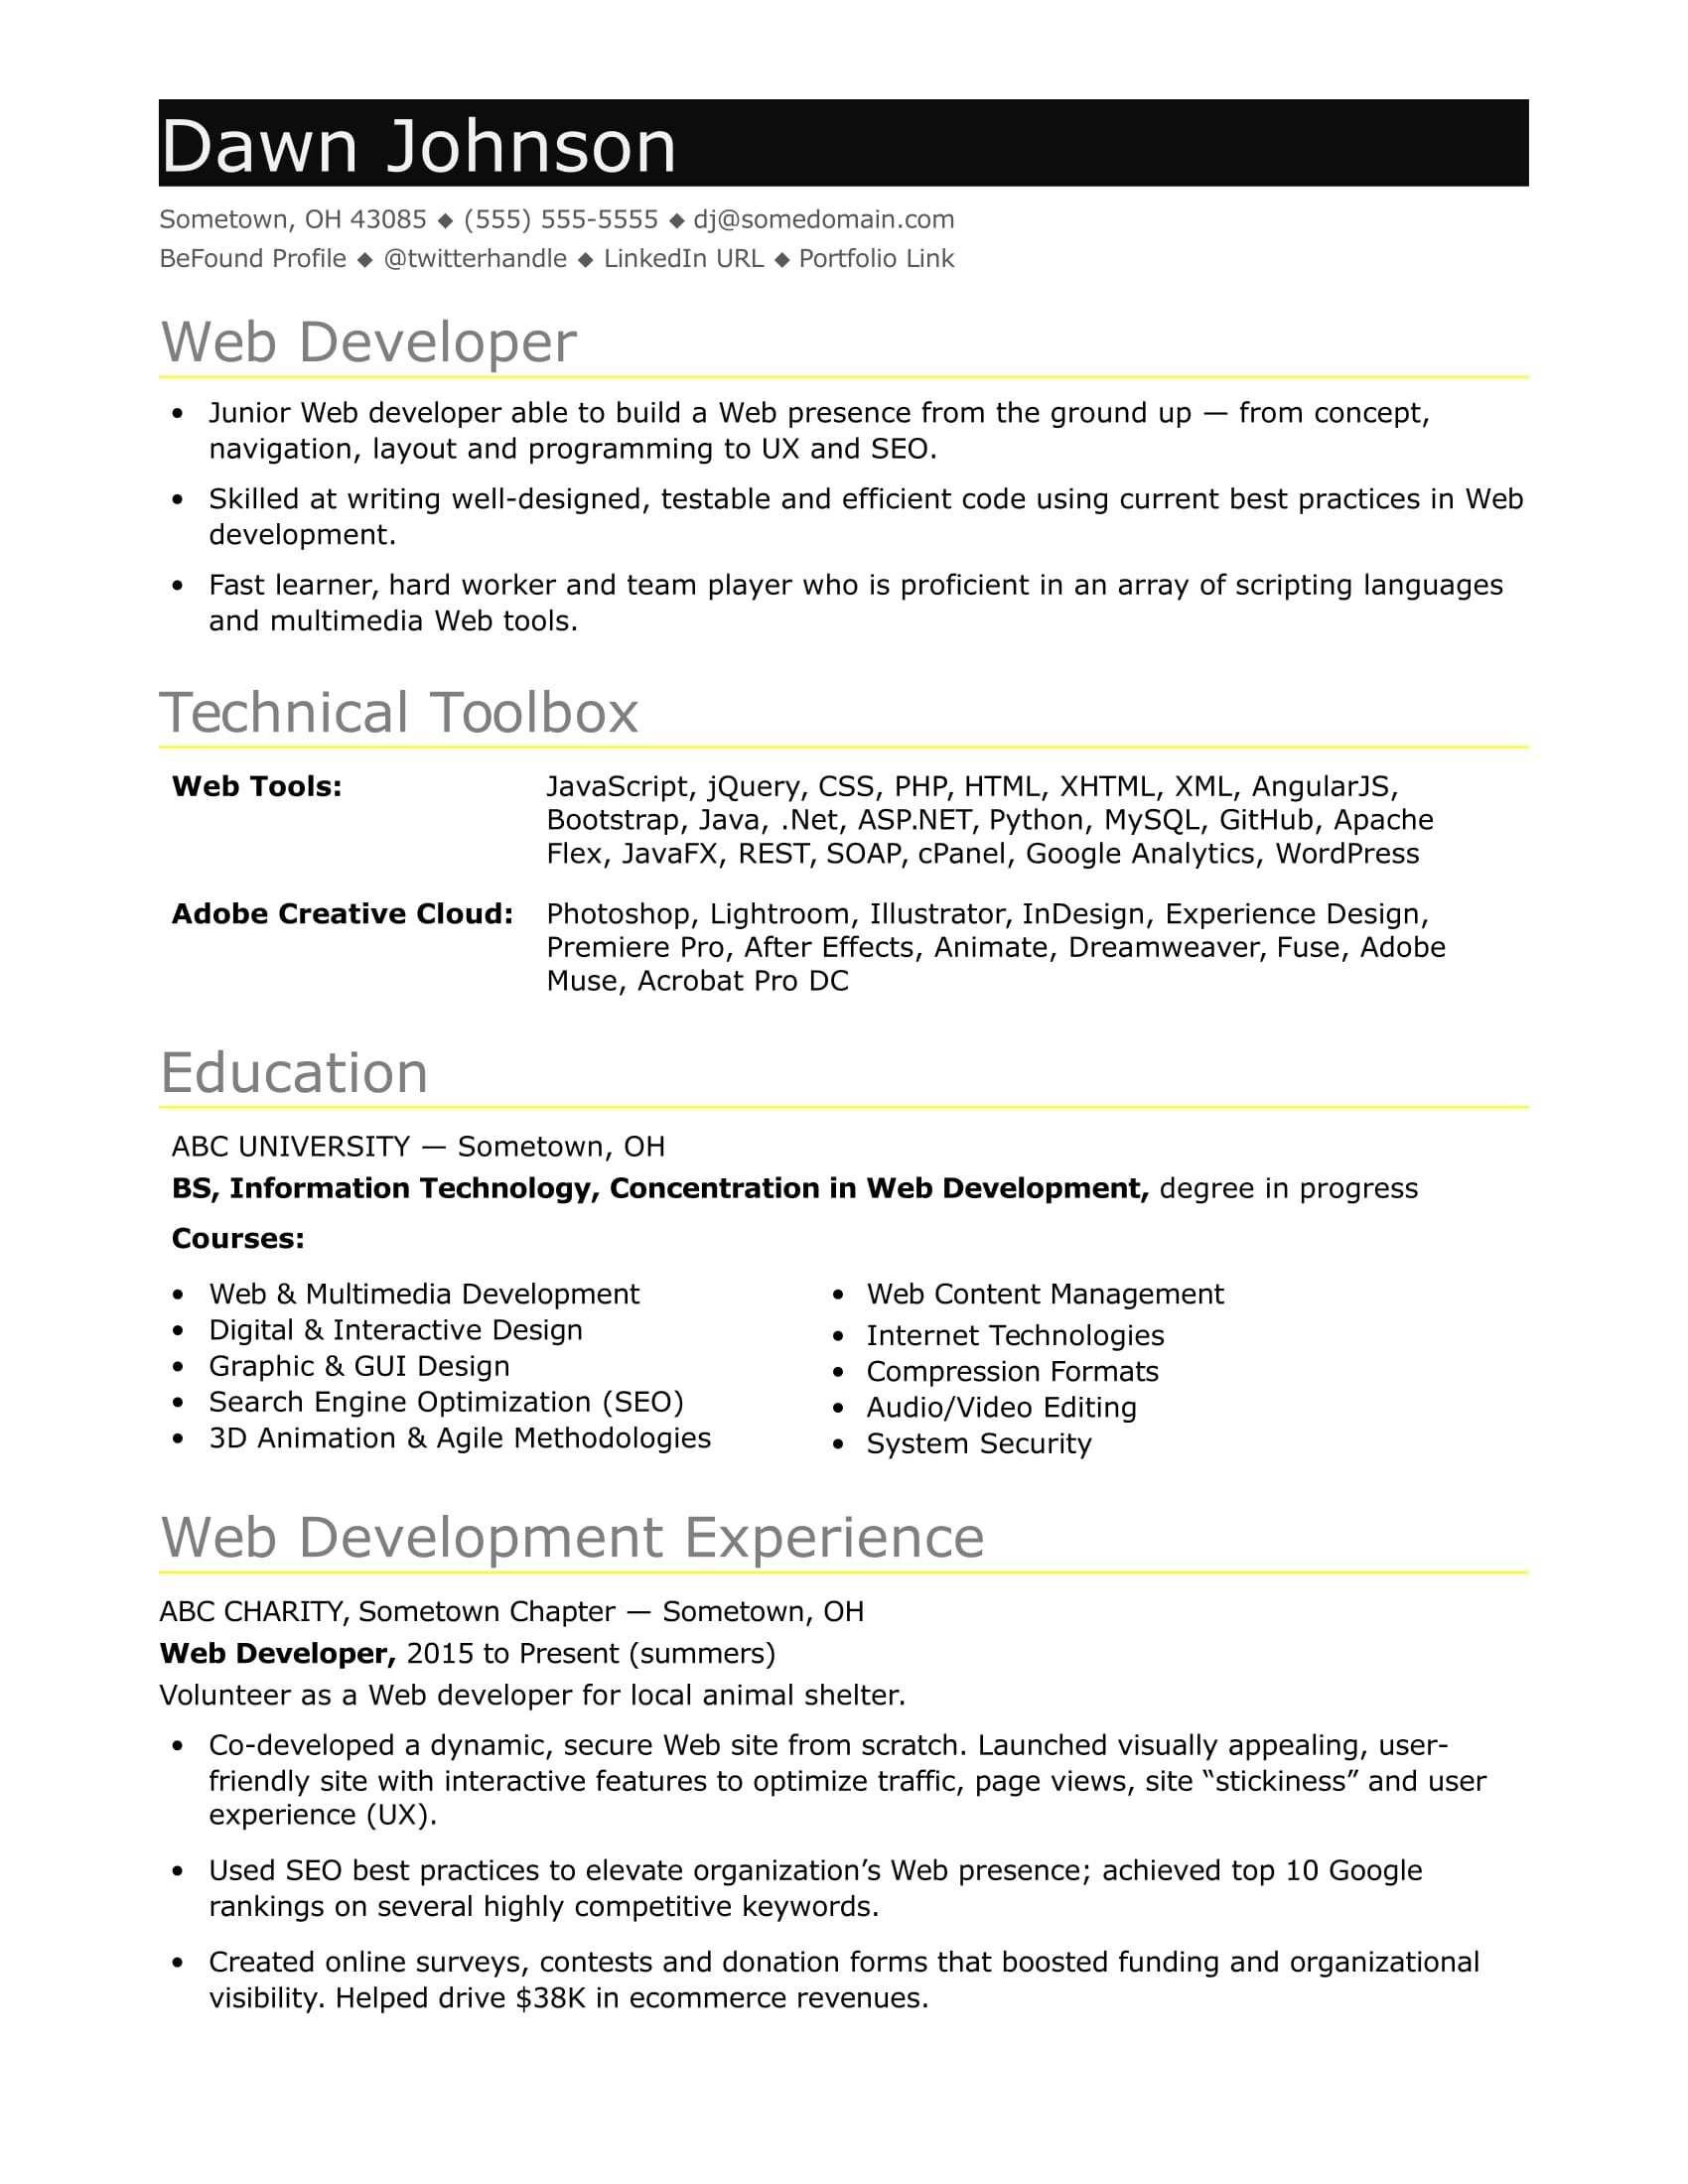 Sample Resume for an EntryLevel IT Developer Monstercom